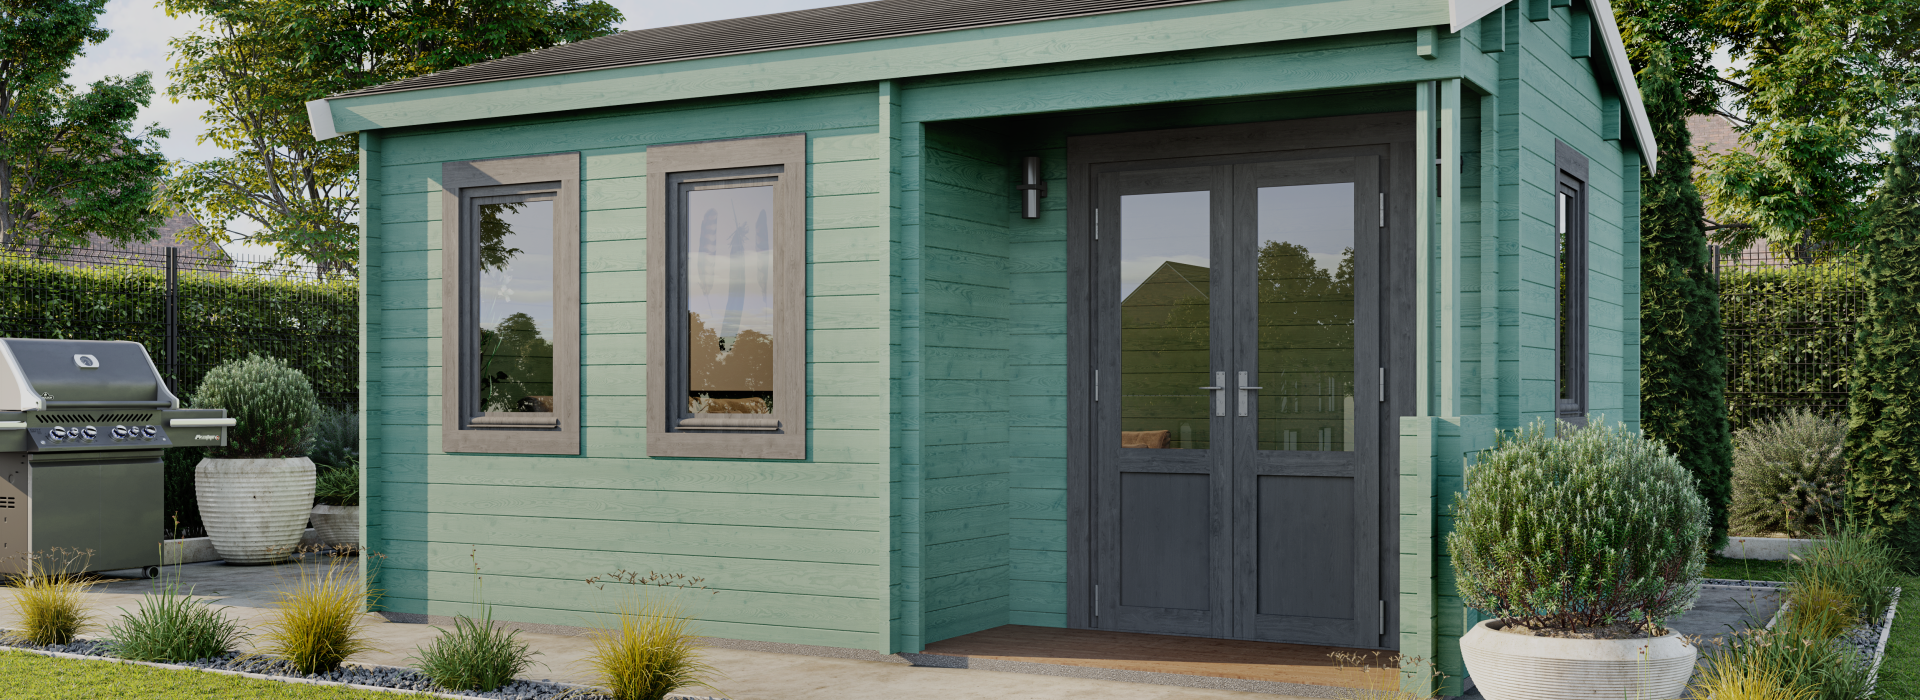 Log Cabins Suppliers, Garden Home Offices, Dorset